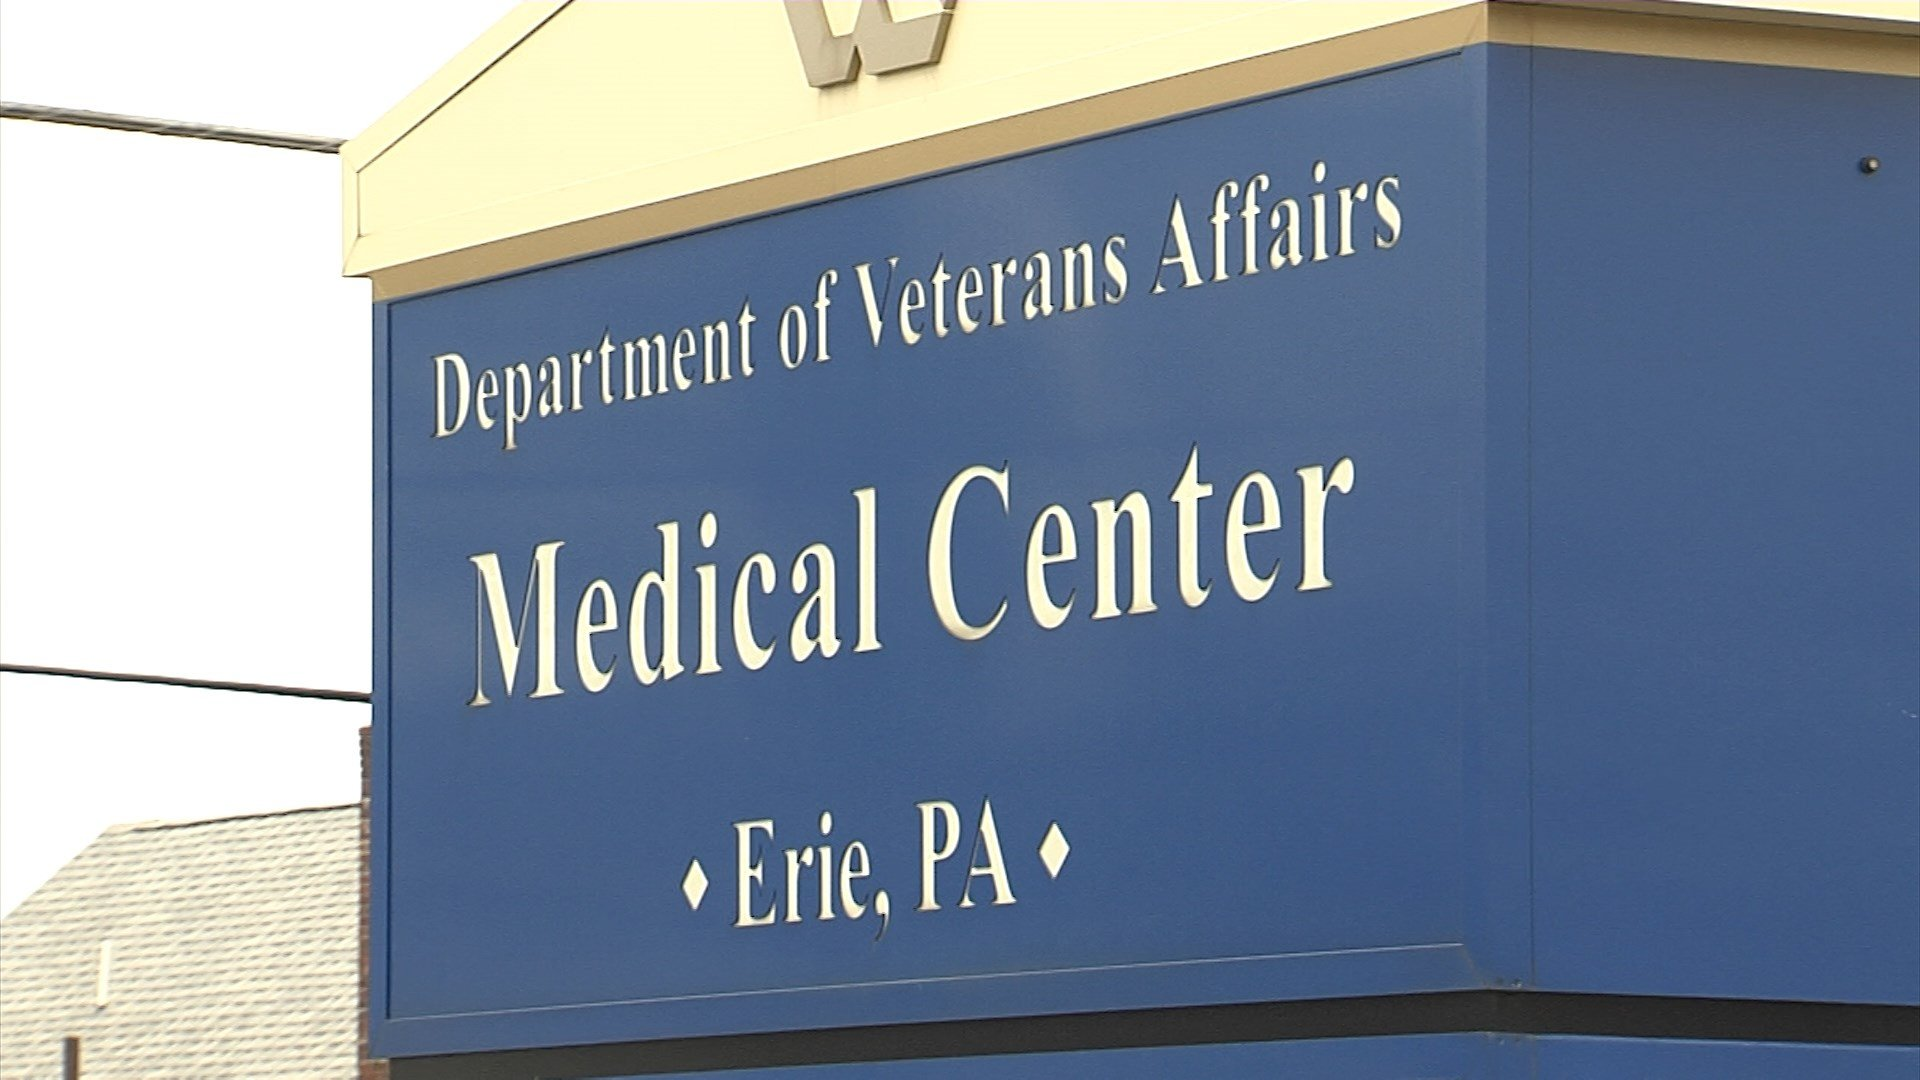 Erie VA Medical Center